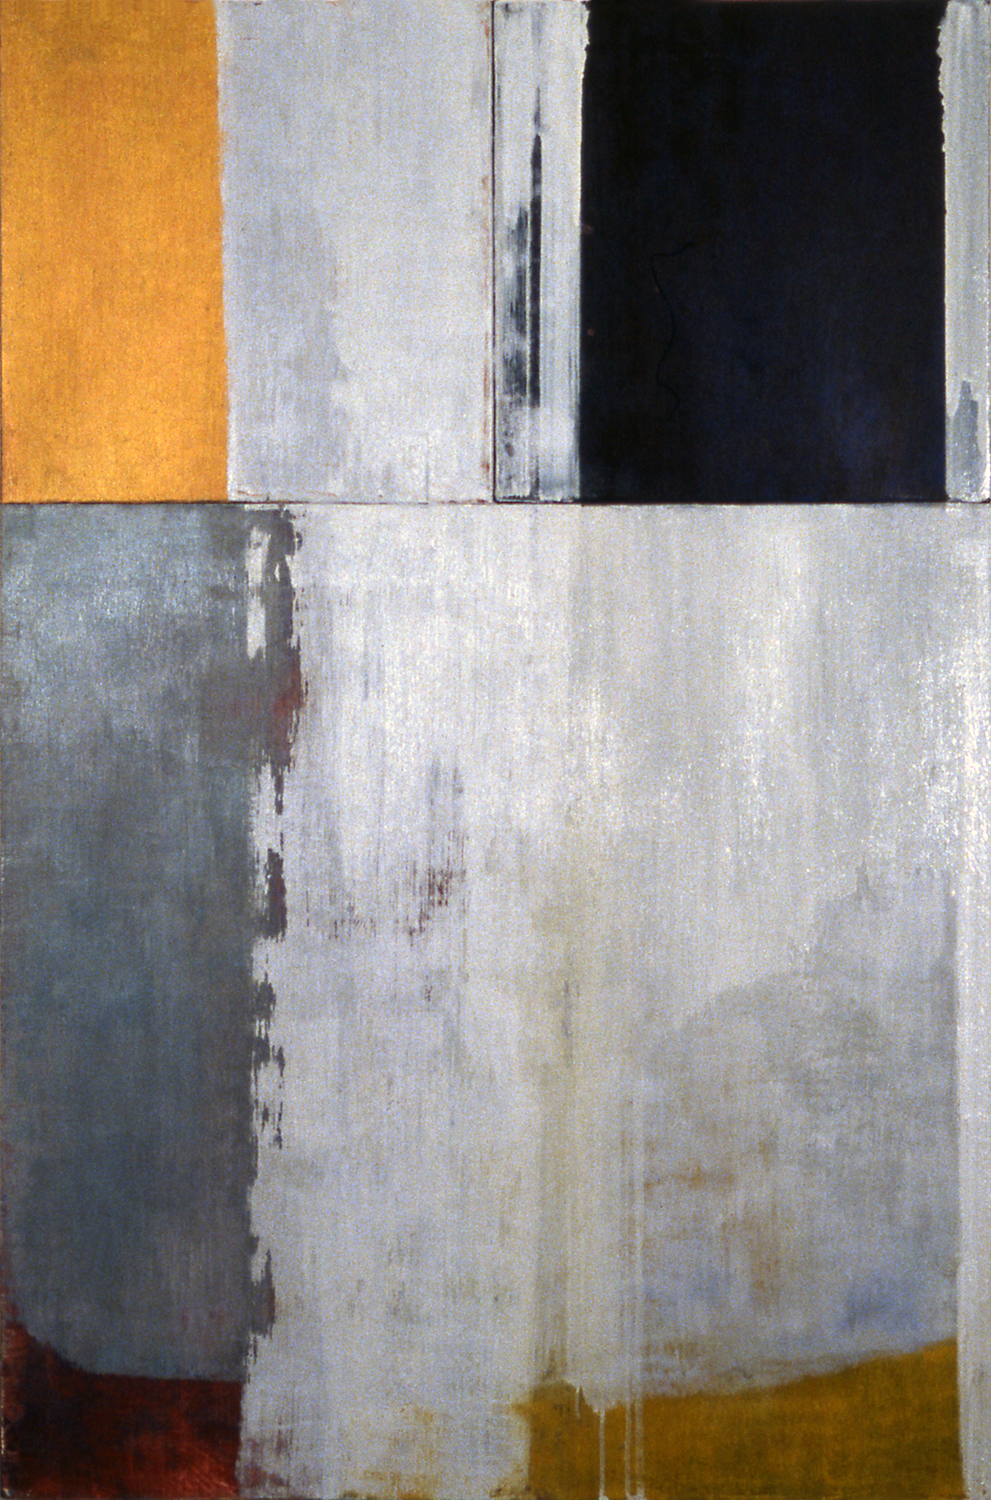 Quarter, 1997, Oil, acrylic on canvas over panels, 36 x 24 inches.